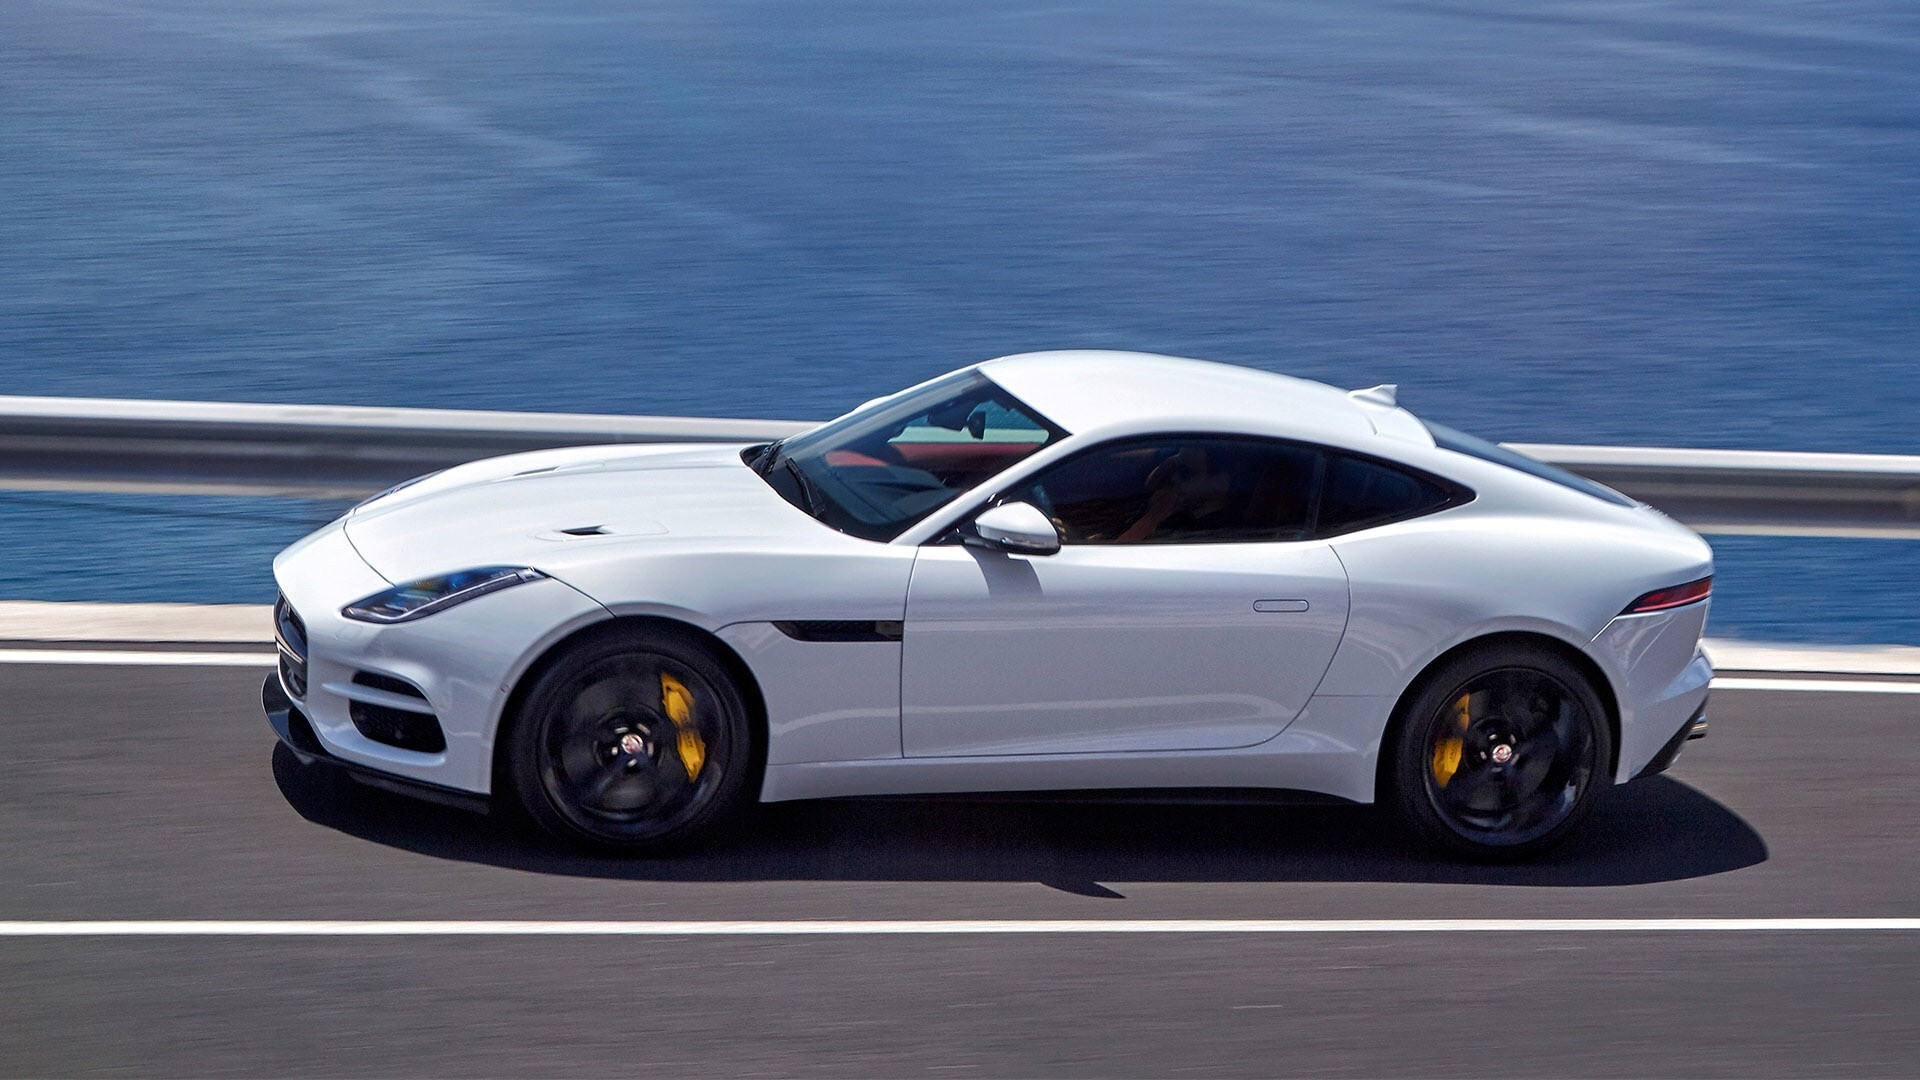 2018 jaguar f type r sports white car hd wallpapers